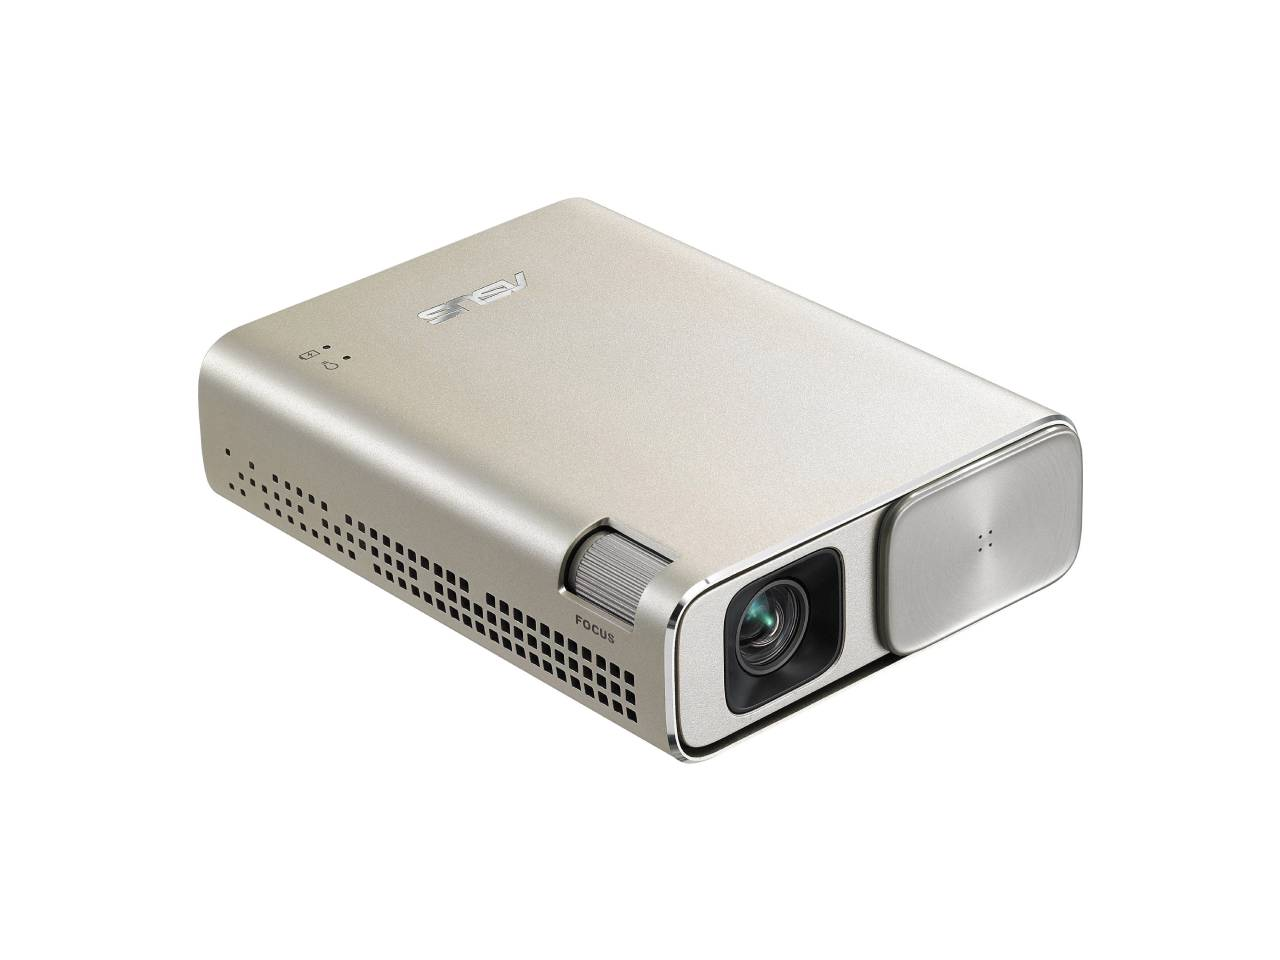 ASUS ZenBeam Go E1Z USB Pocket Projector, 150 Lumens, Built-in 6400mAh Battery, Up to 5-hour Projection time, Power Bank, Auto Keystone Correction, Micro USB / Type-C-computerspace